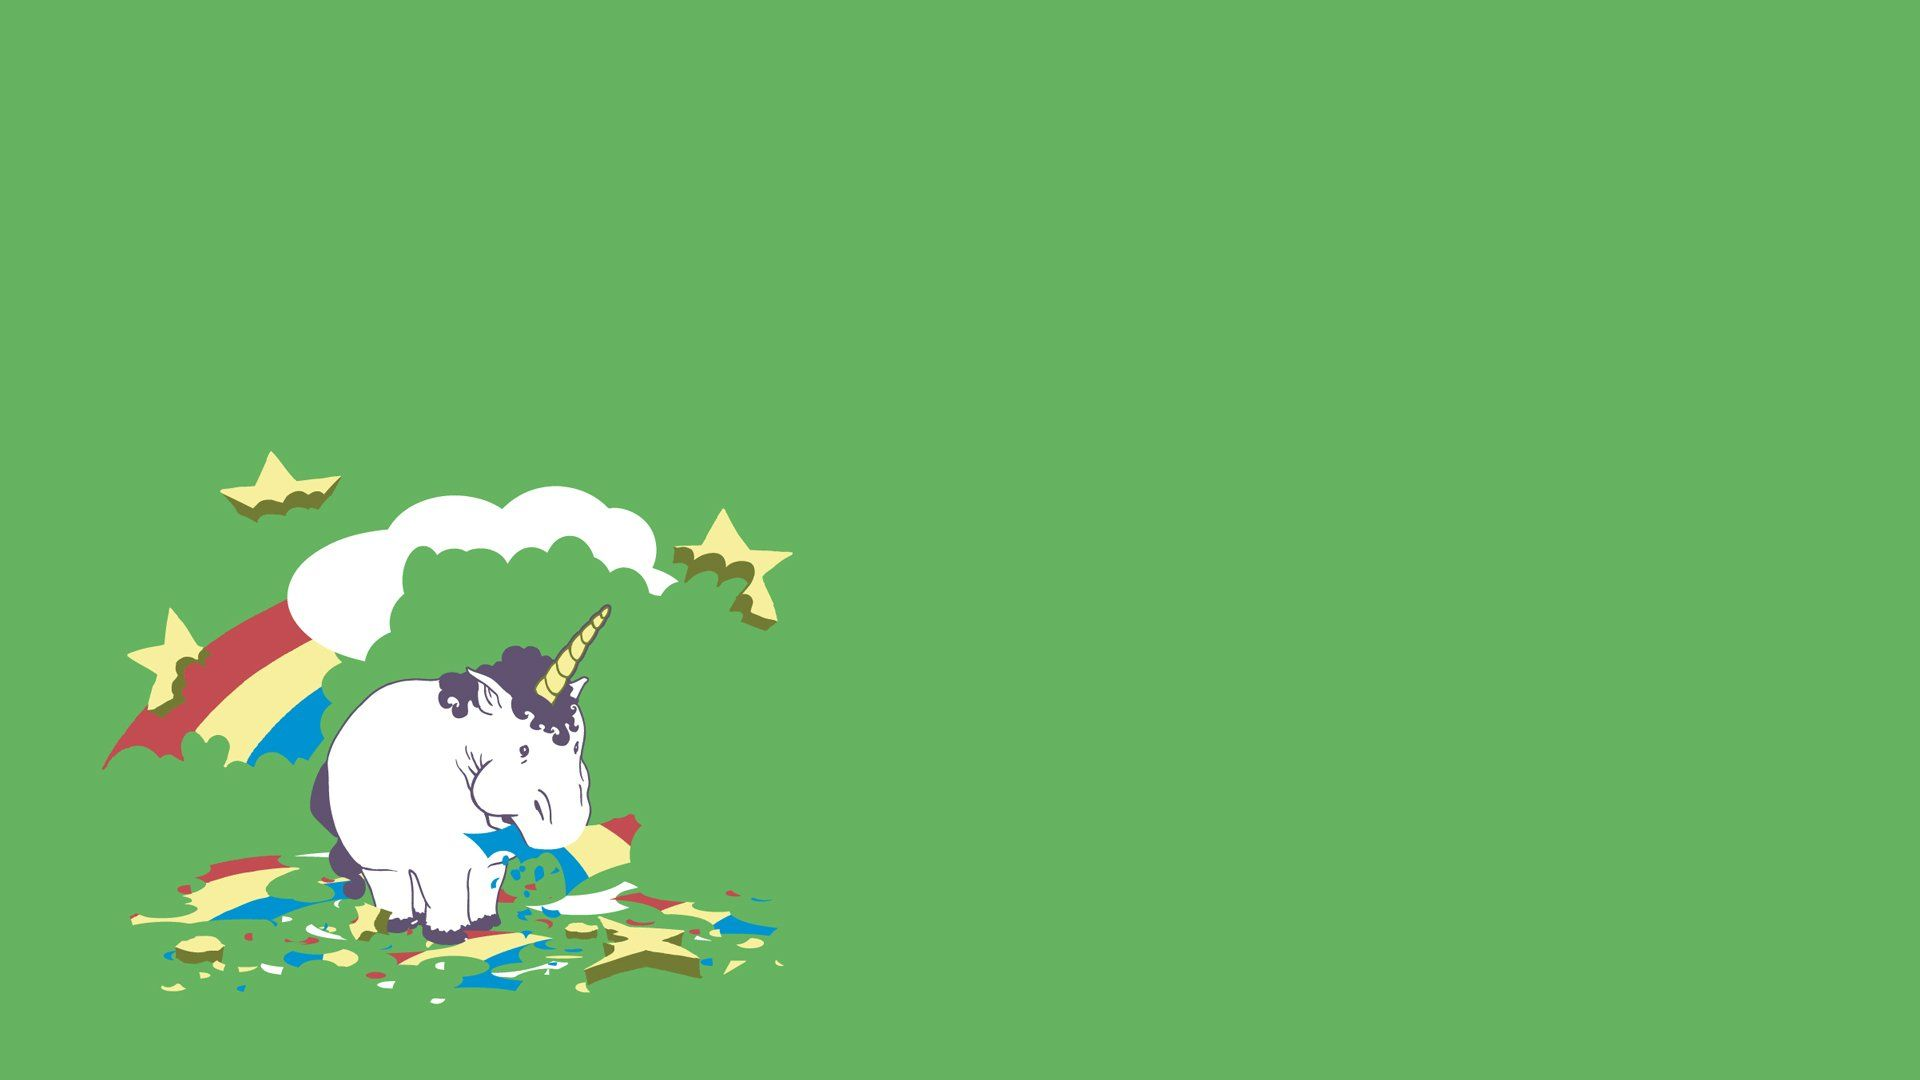 unicorn cartoon wallpaper